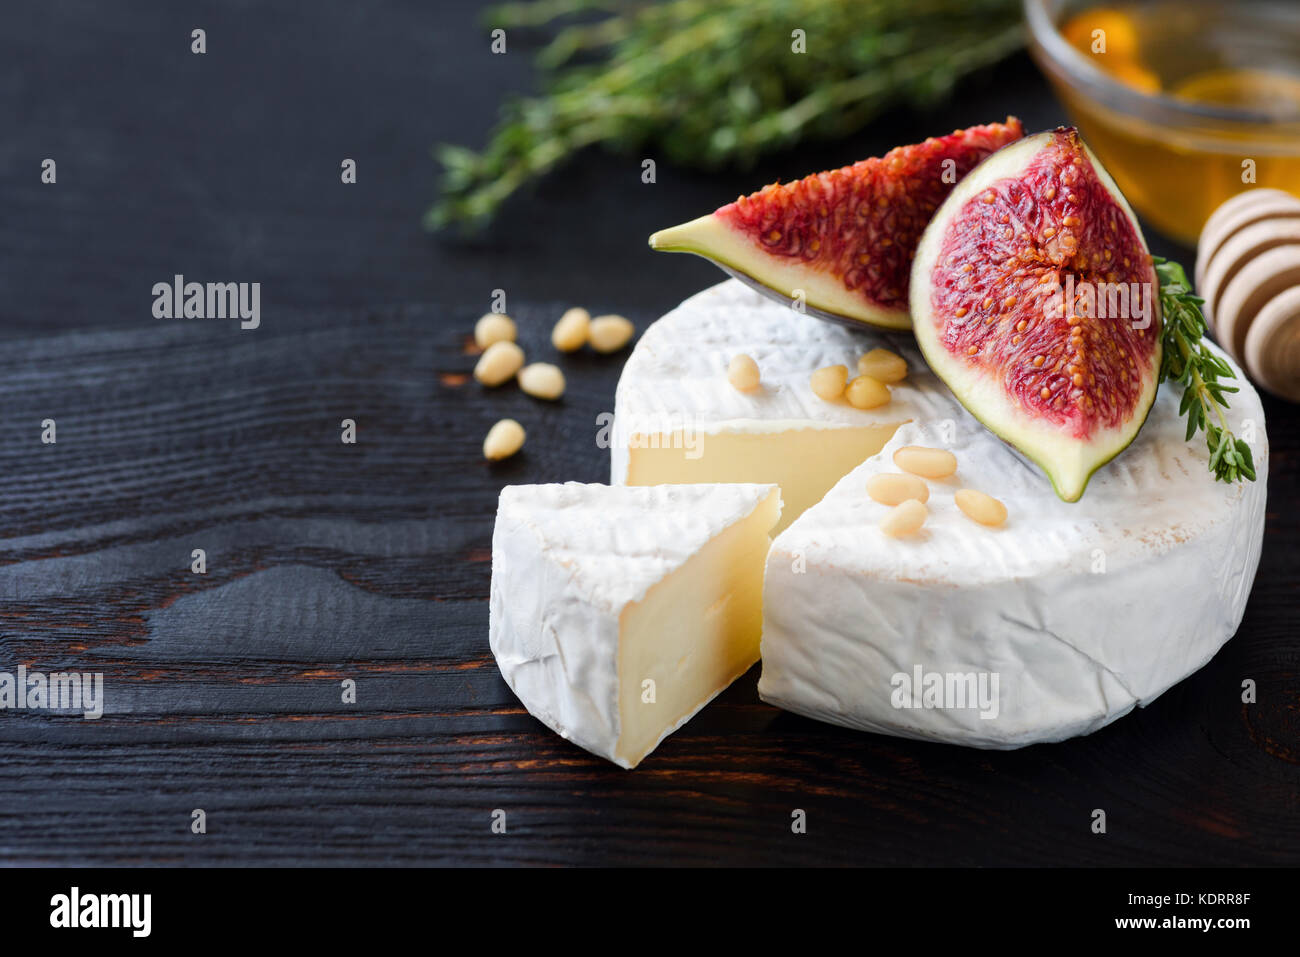 White cheese brie or camambert. Gourmet appetizer cheese plate with white cheese, figs, thyme, honey and nuts - Stock Image